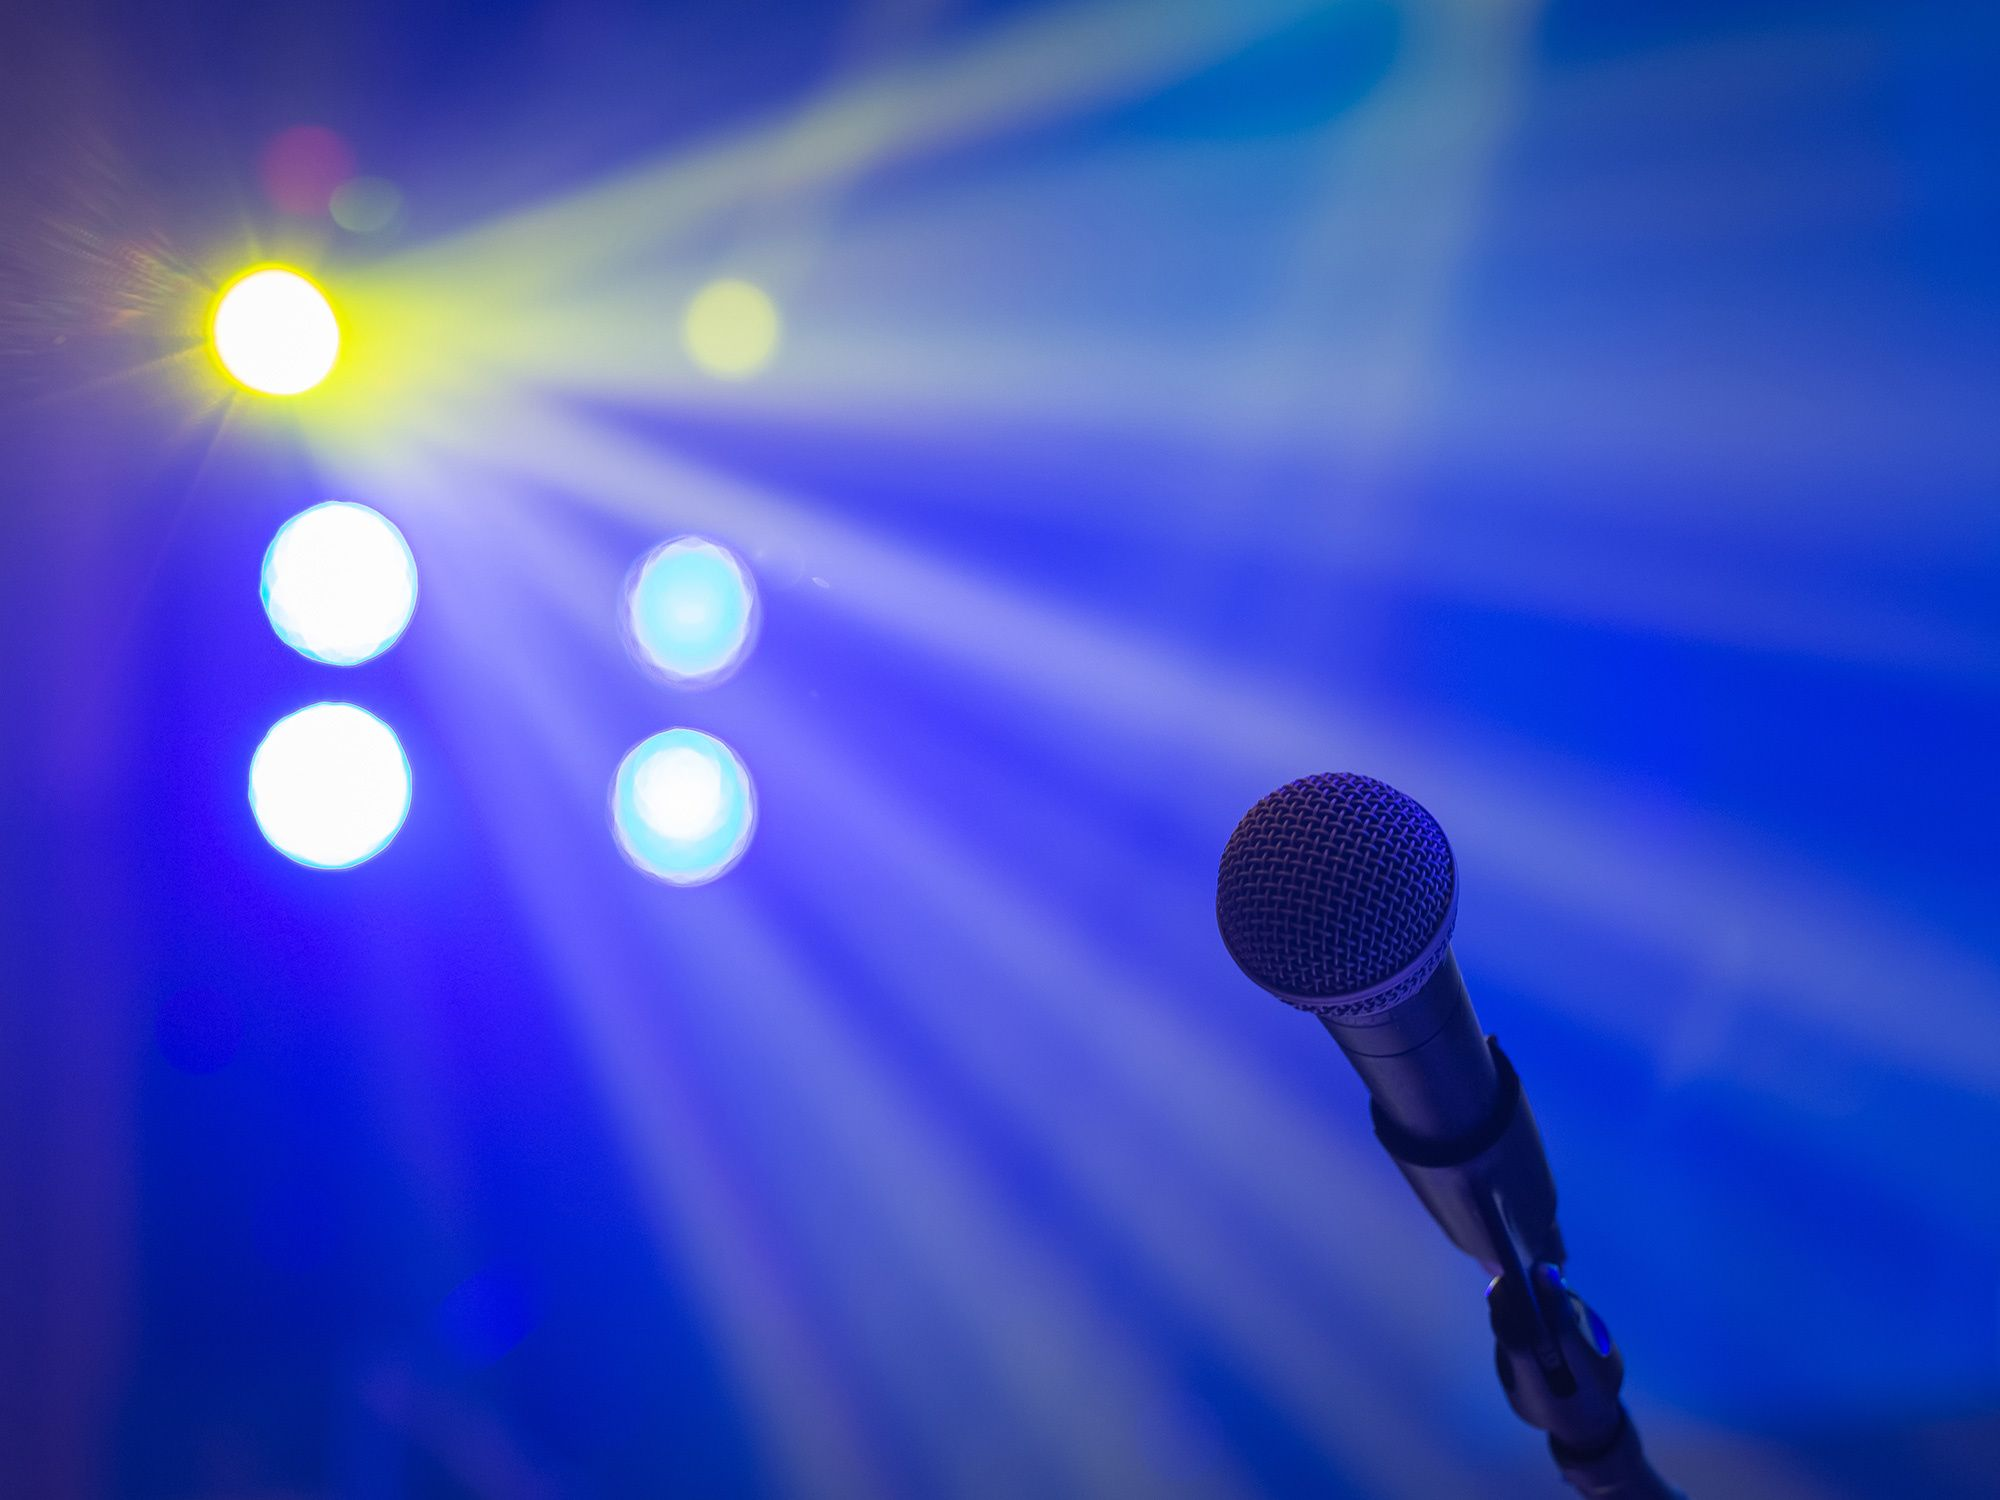 Karaoke microphone and stage lights.